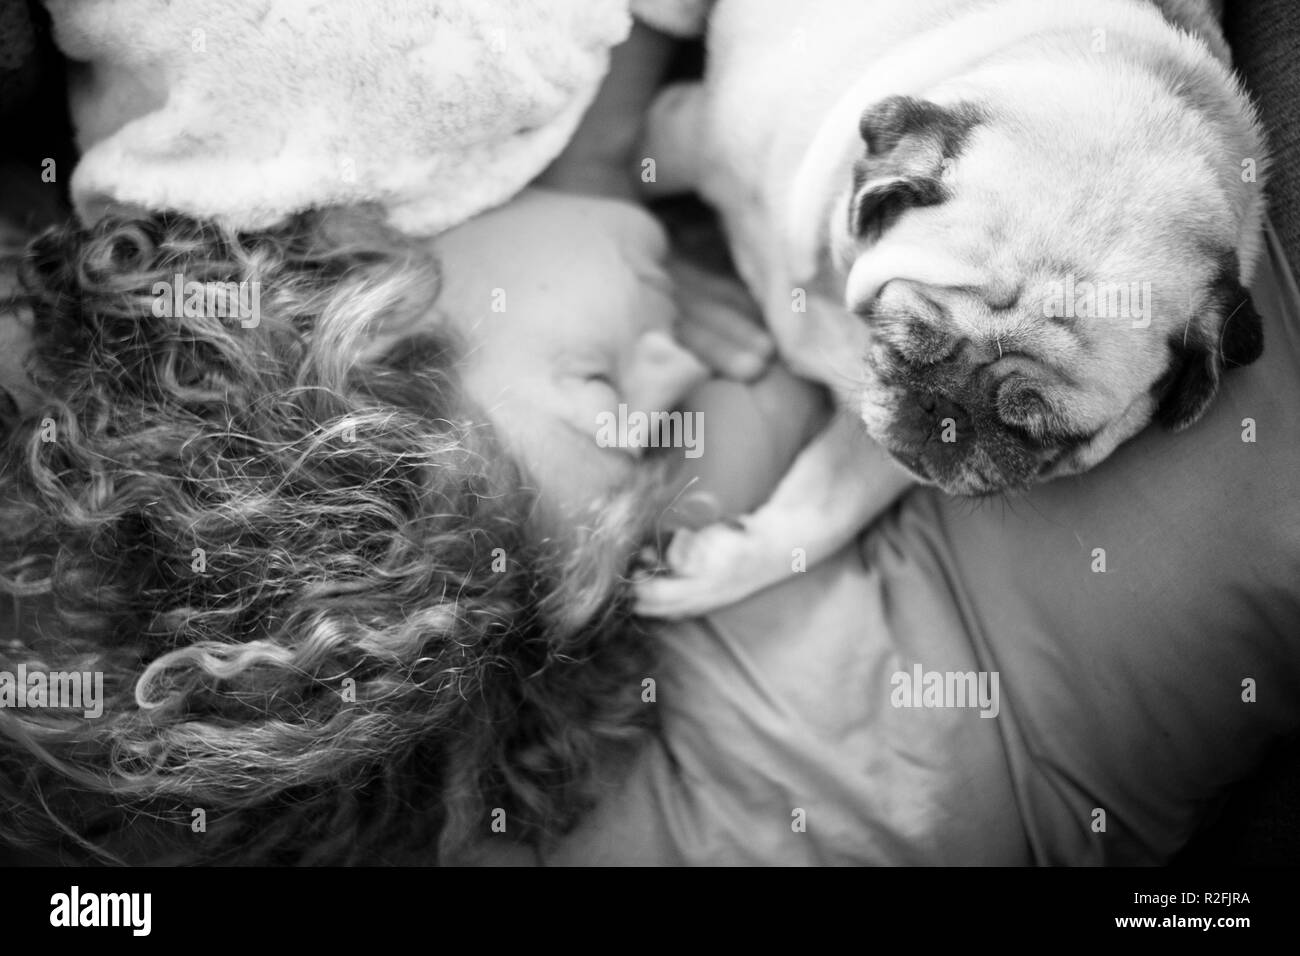 friendship concepts for 40s woman sleeping with her best friend pug dog at home. Both on the pillow and brown warm tones. Dreaming together. romantic black ad white concept image - Stock Image